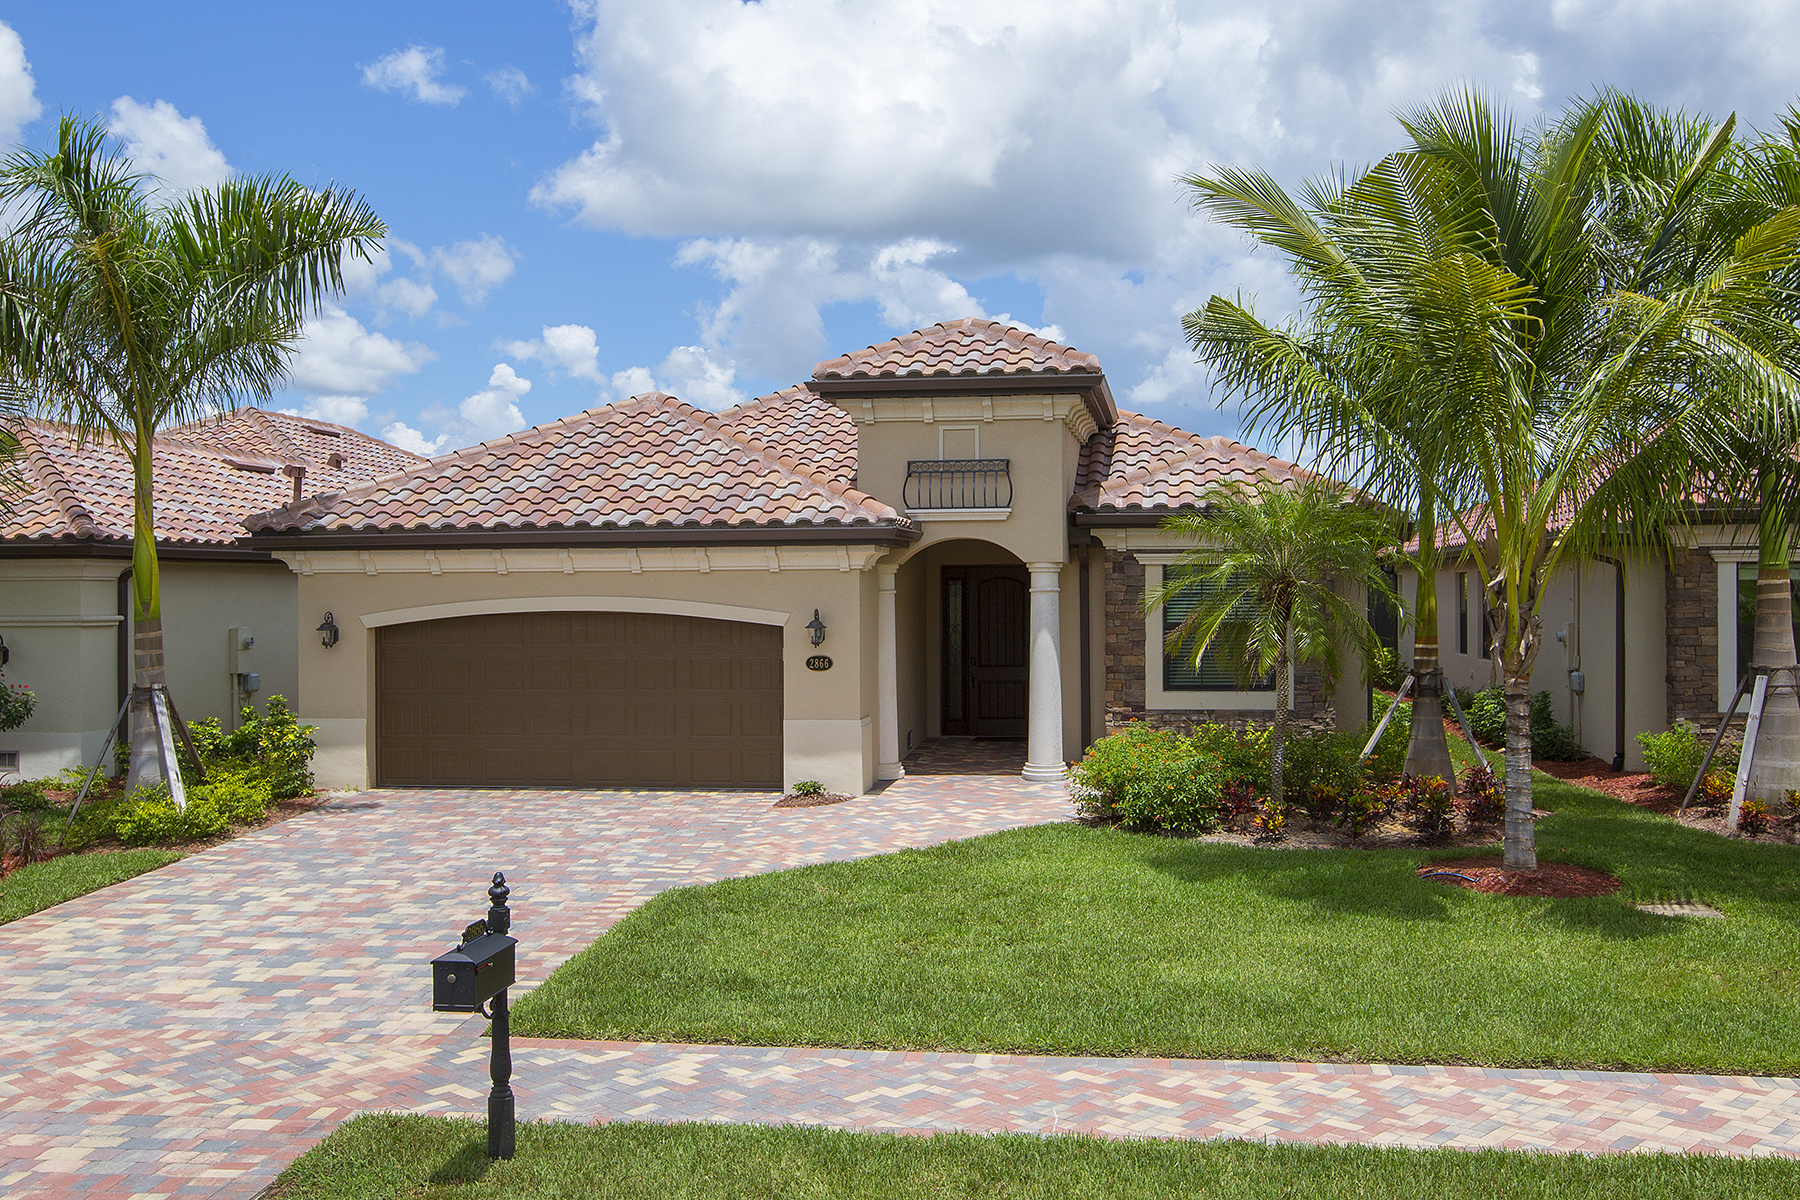 Single Family Home for Sale at FIDDLER'S CREEK - MILLBROOK 2866 Aviamar Cir Naples, Florida, 34114 United States